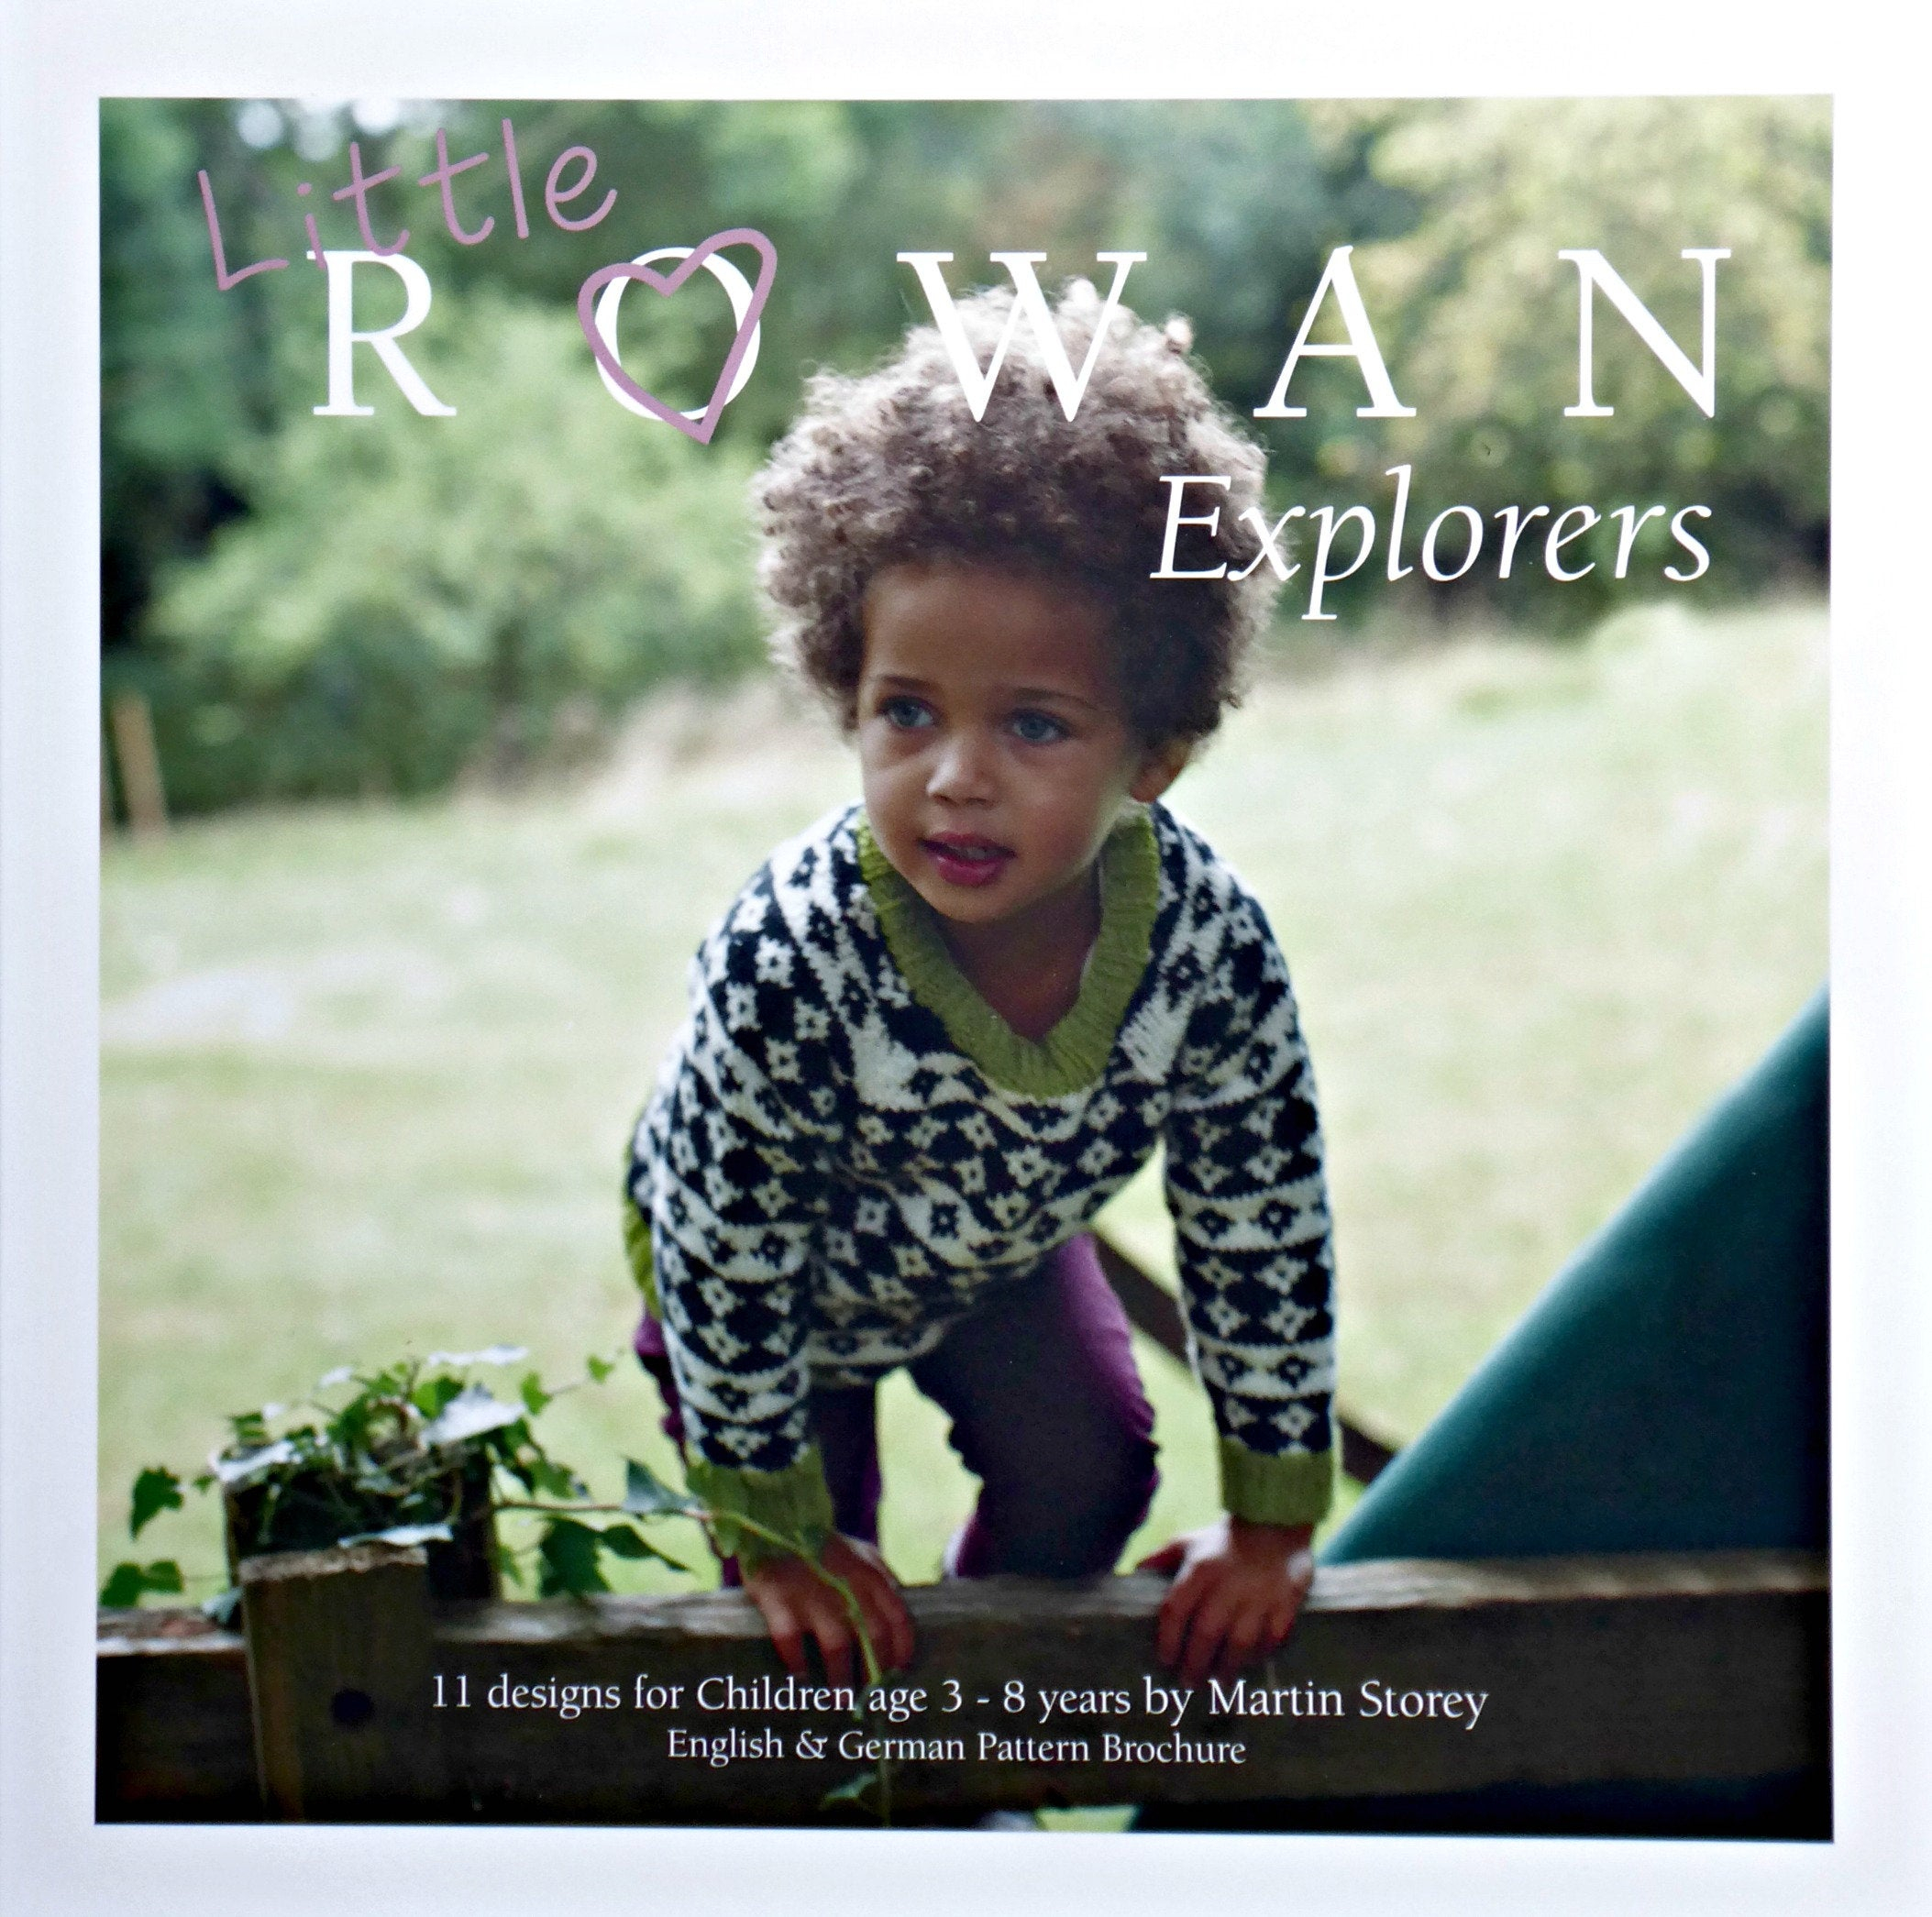 Rowan Knitting Pattern Books Childrens Knitting Pattern Book Rowan Little Explorers Knitting Pattern Book Dk And 4ply Light Worsted And Sport